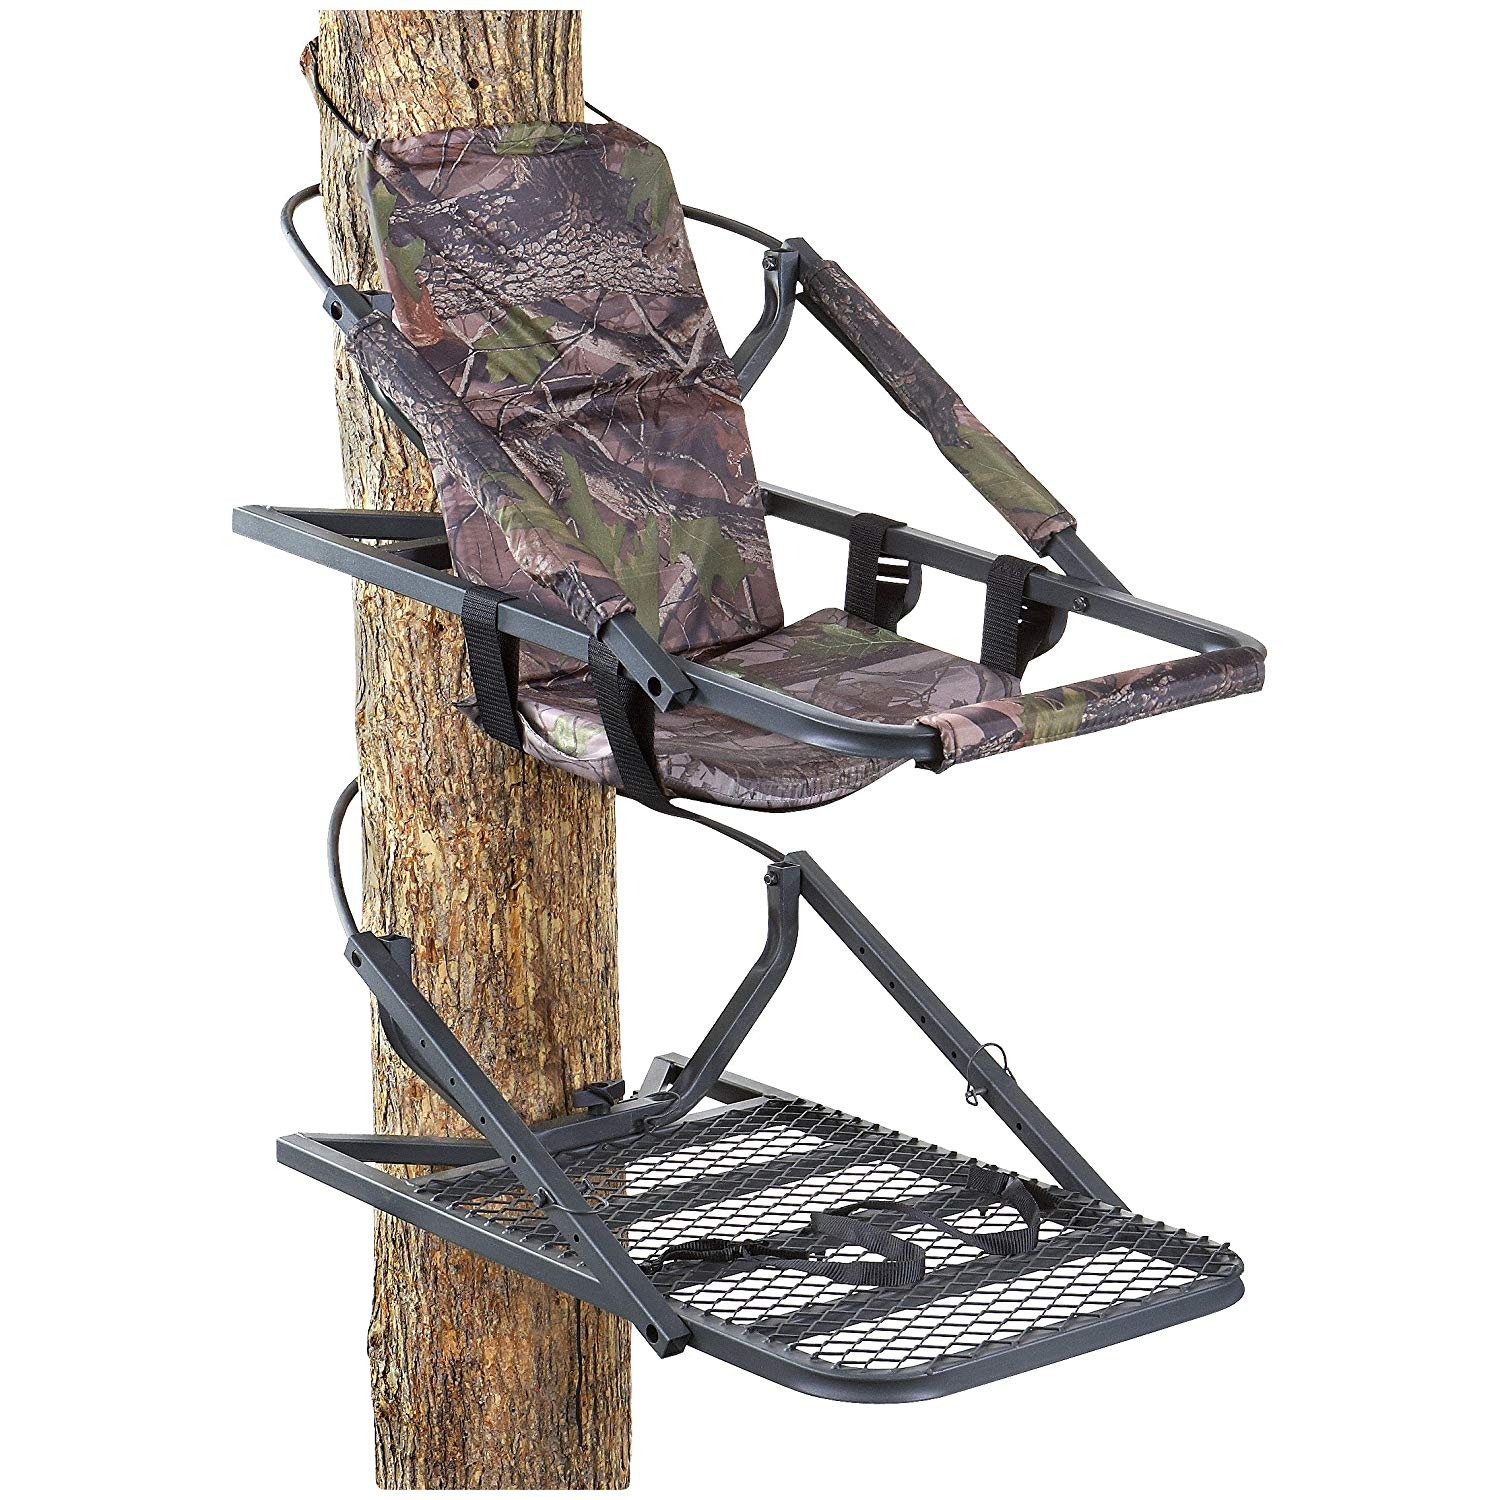 Top 10 Best Climbing Tree Stand 2020 Reviews For The Money 9